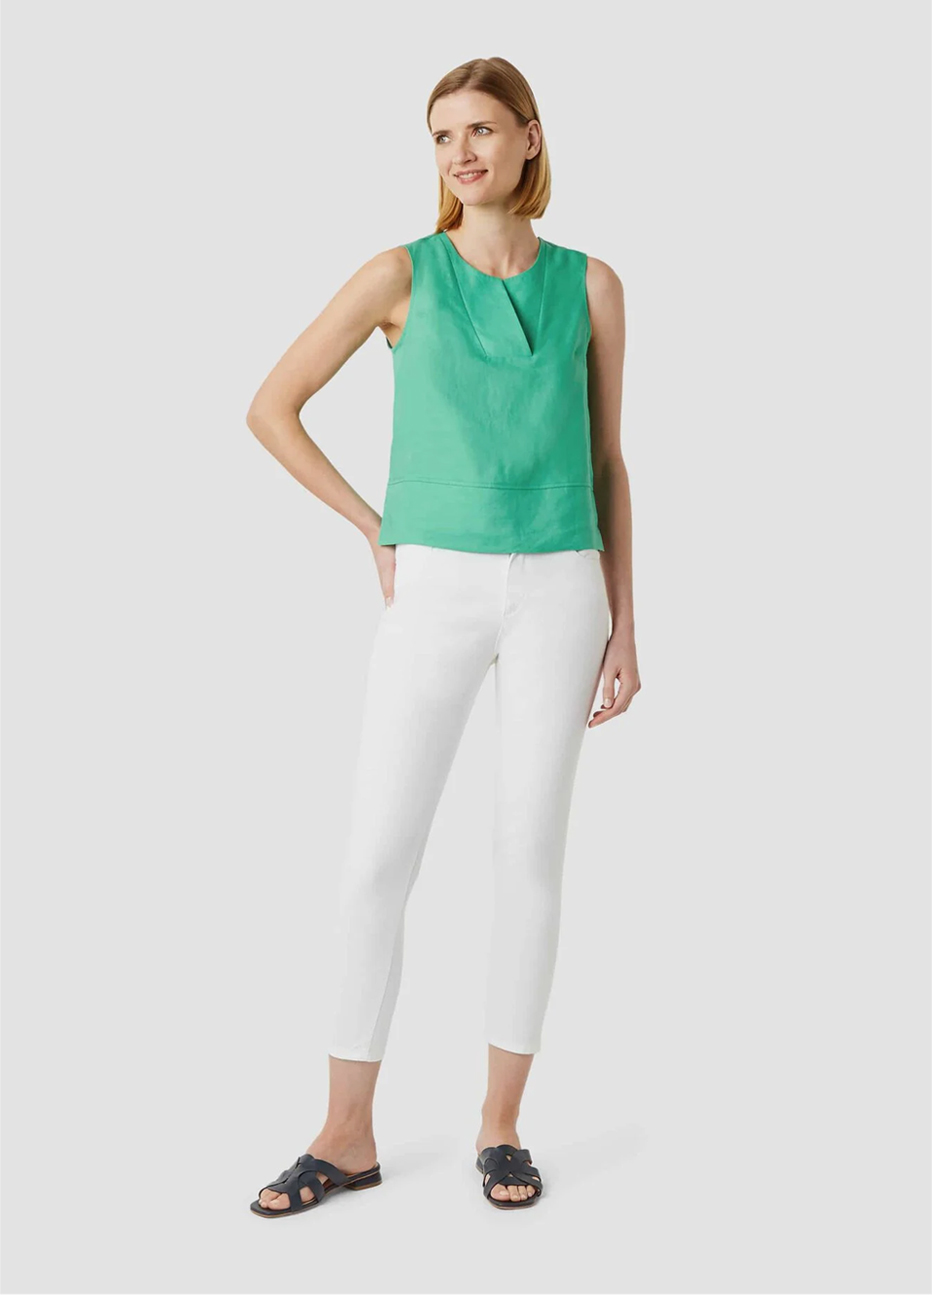 Green blouse with cropped white jeans and summer sandals in black by Hobbs.